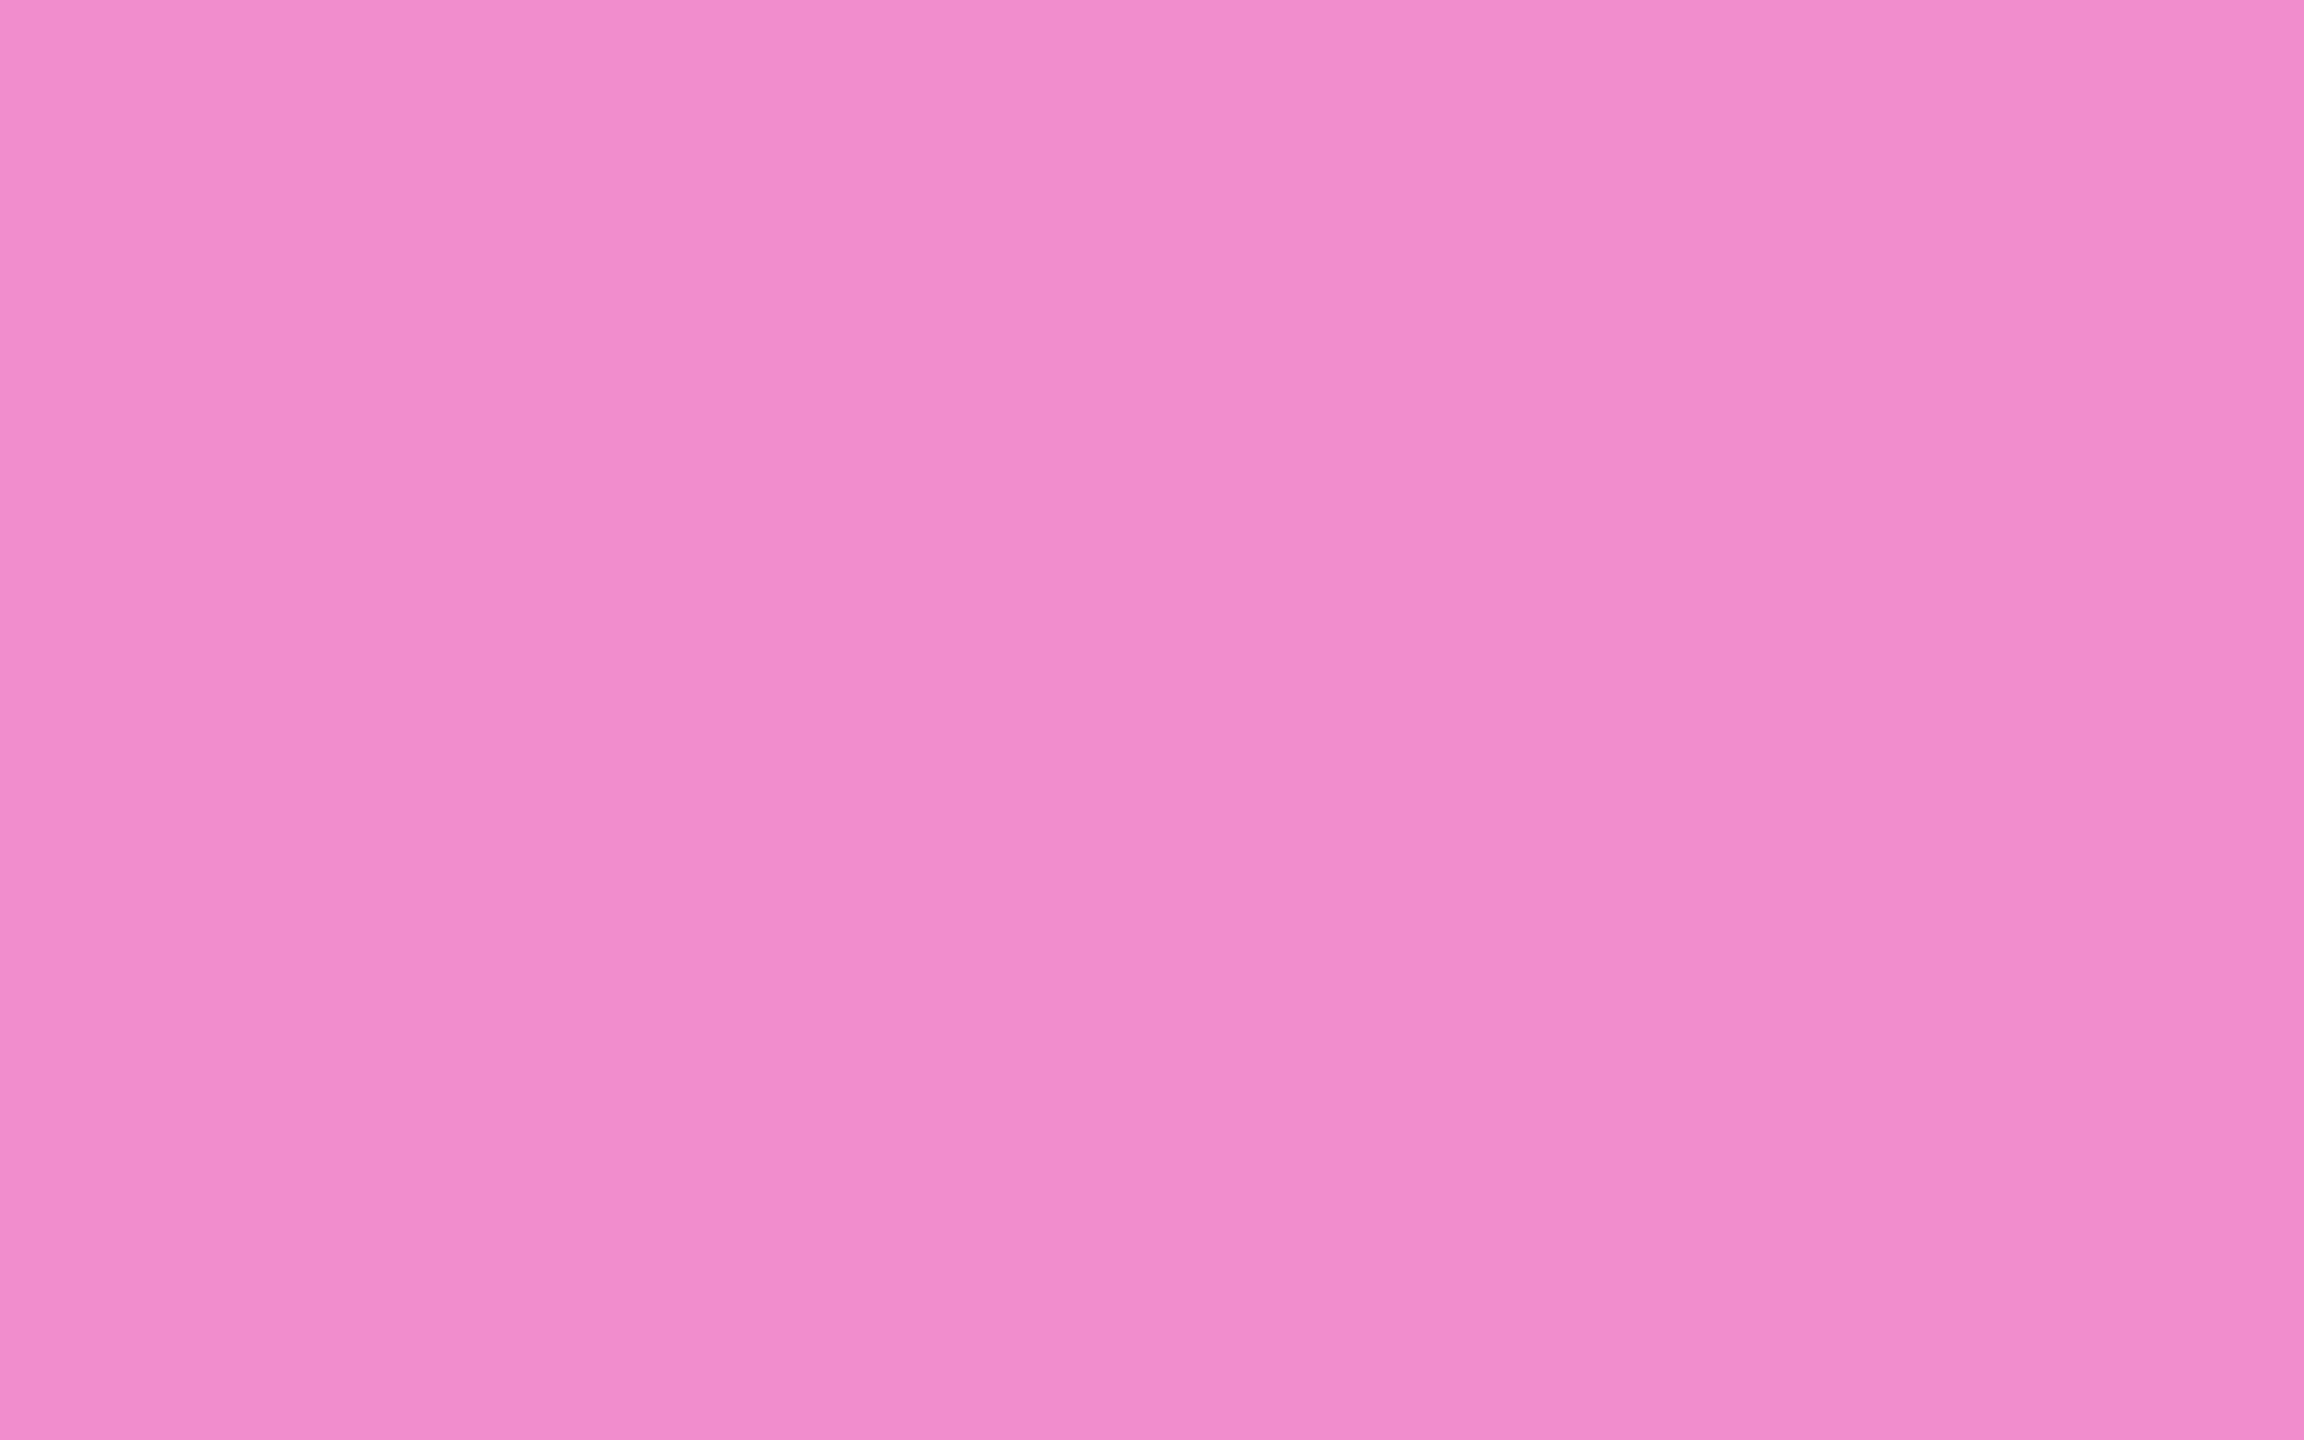 2304x1440 Orchid Pink Solid Color Background